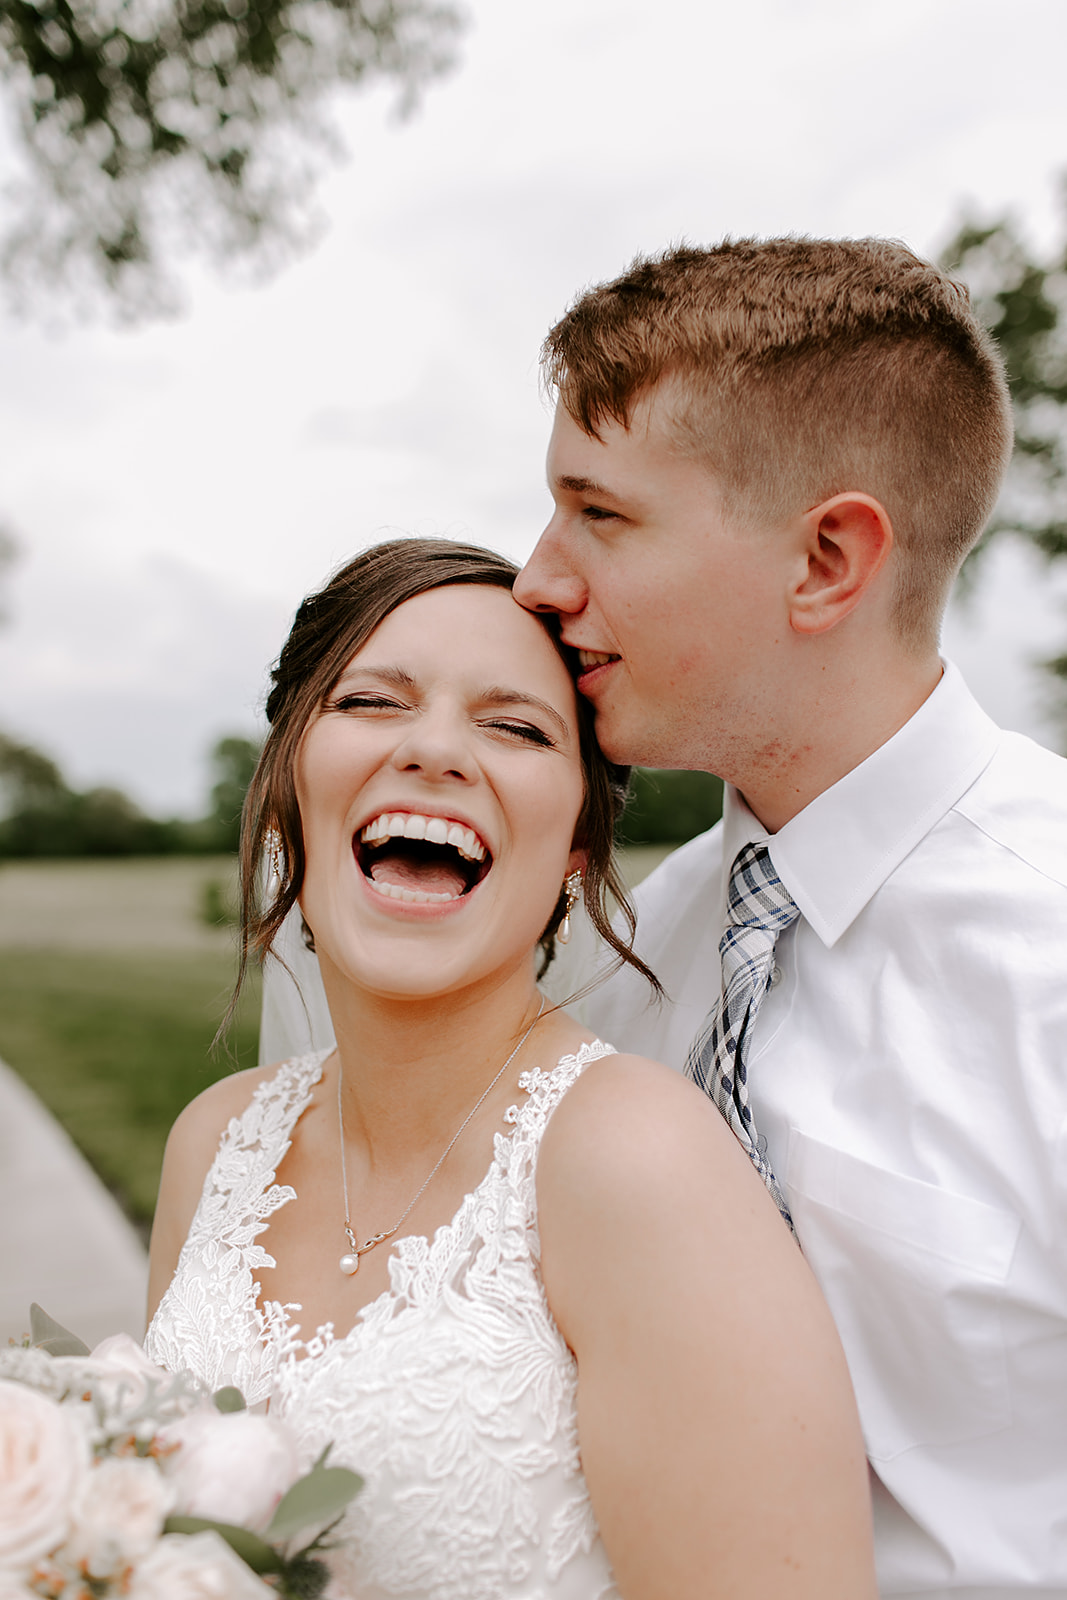 Kendra_and_Mattew_Indiana_Wedding_by_Emily_Wehner-274.jpg